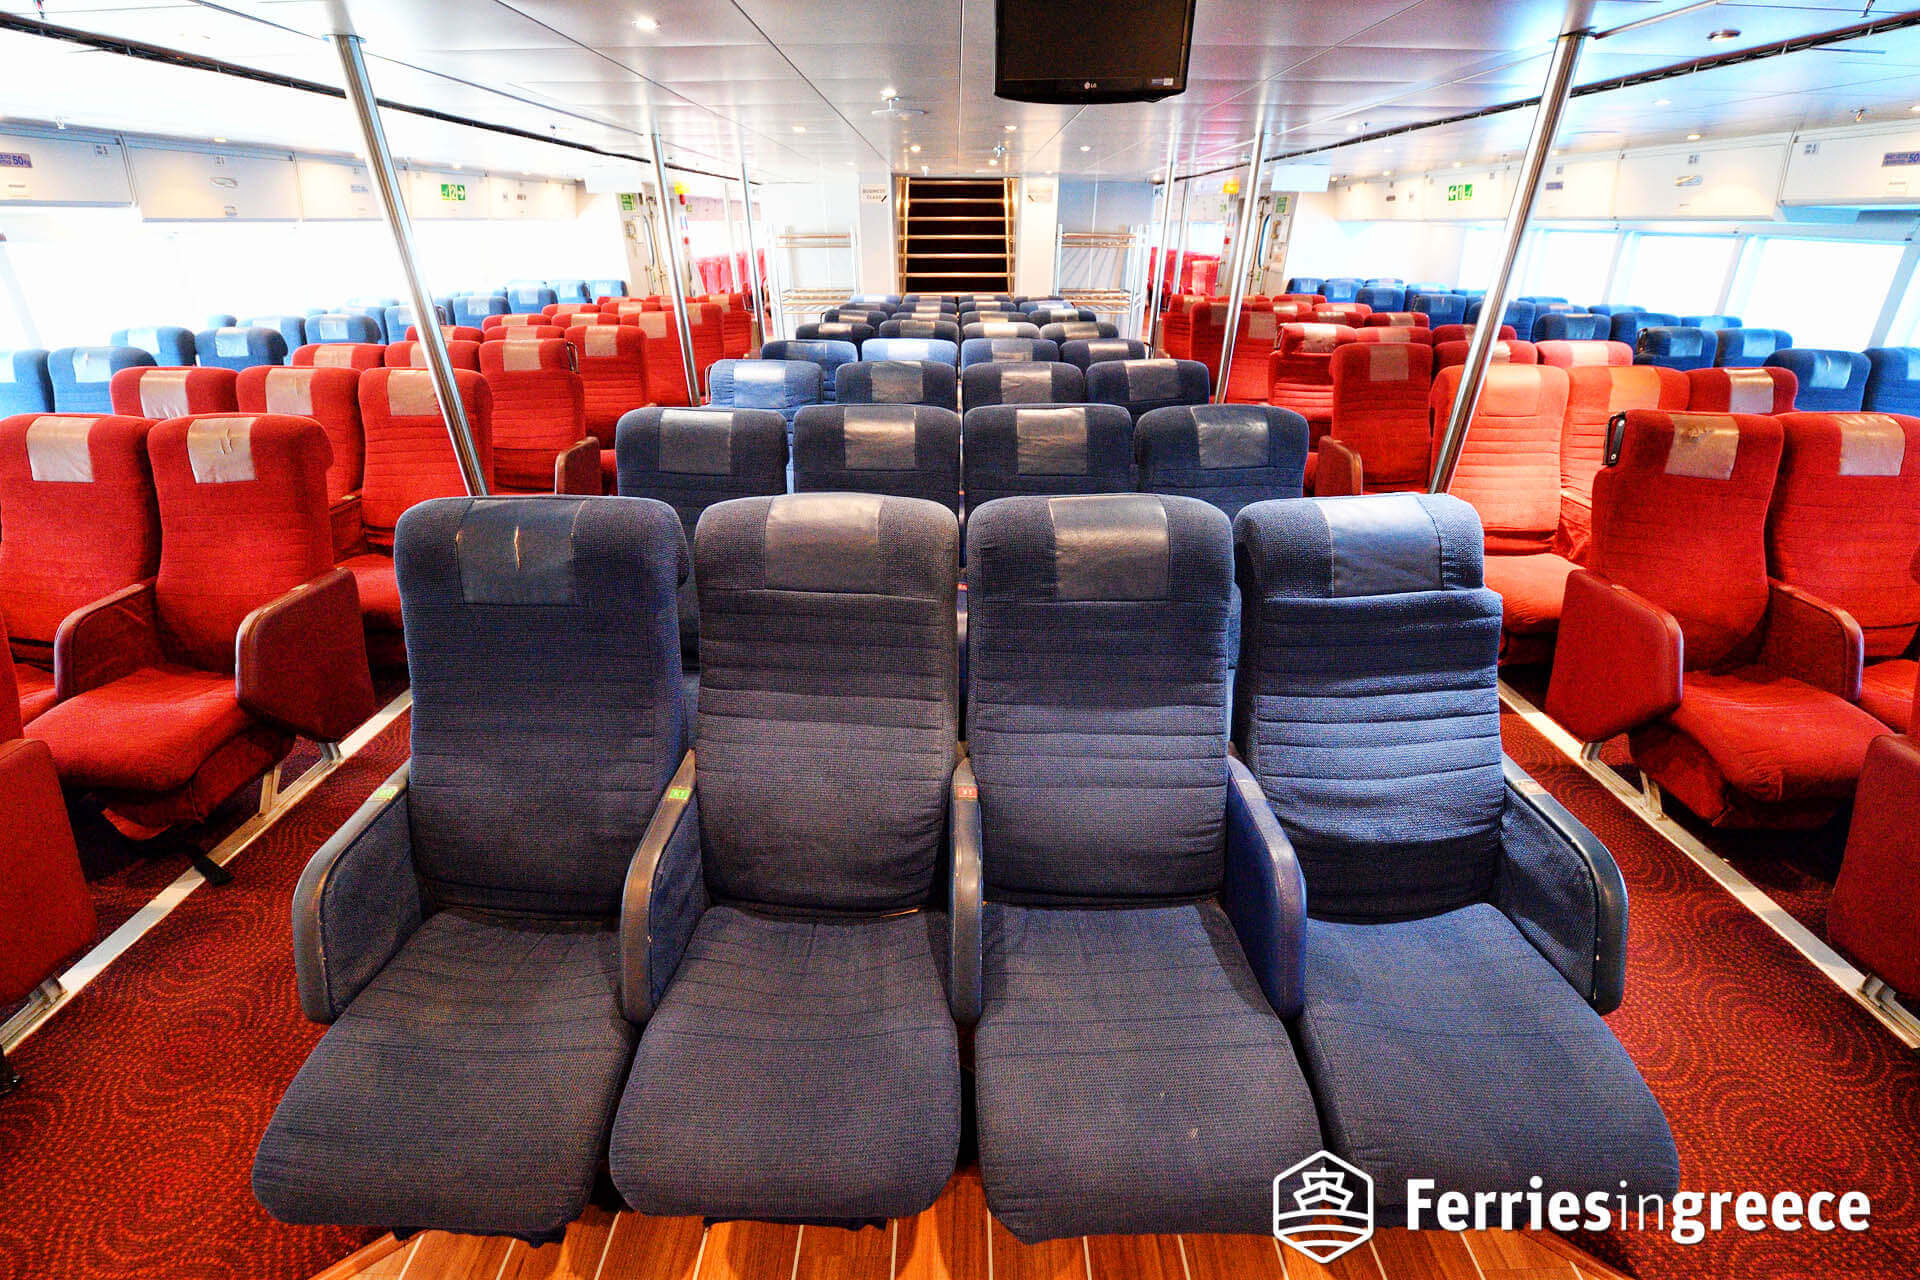 Flyingcat 4 ferry boat, tickets, reviews, photos and routes